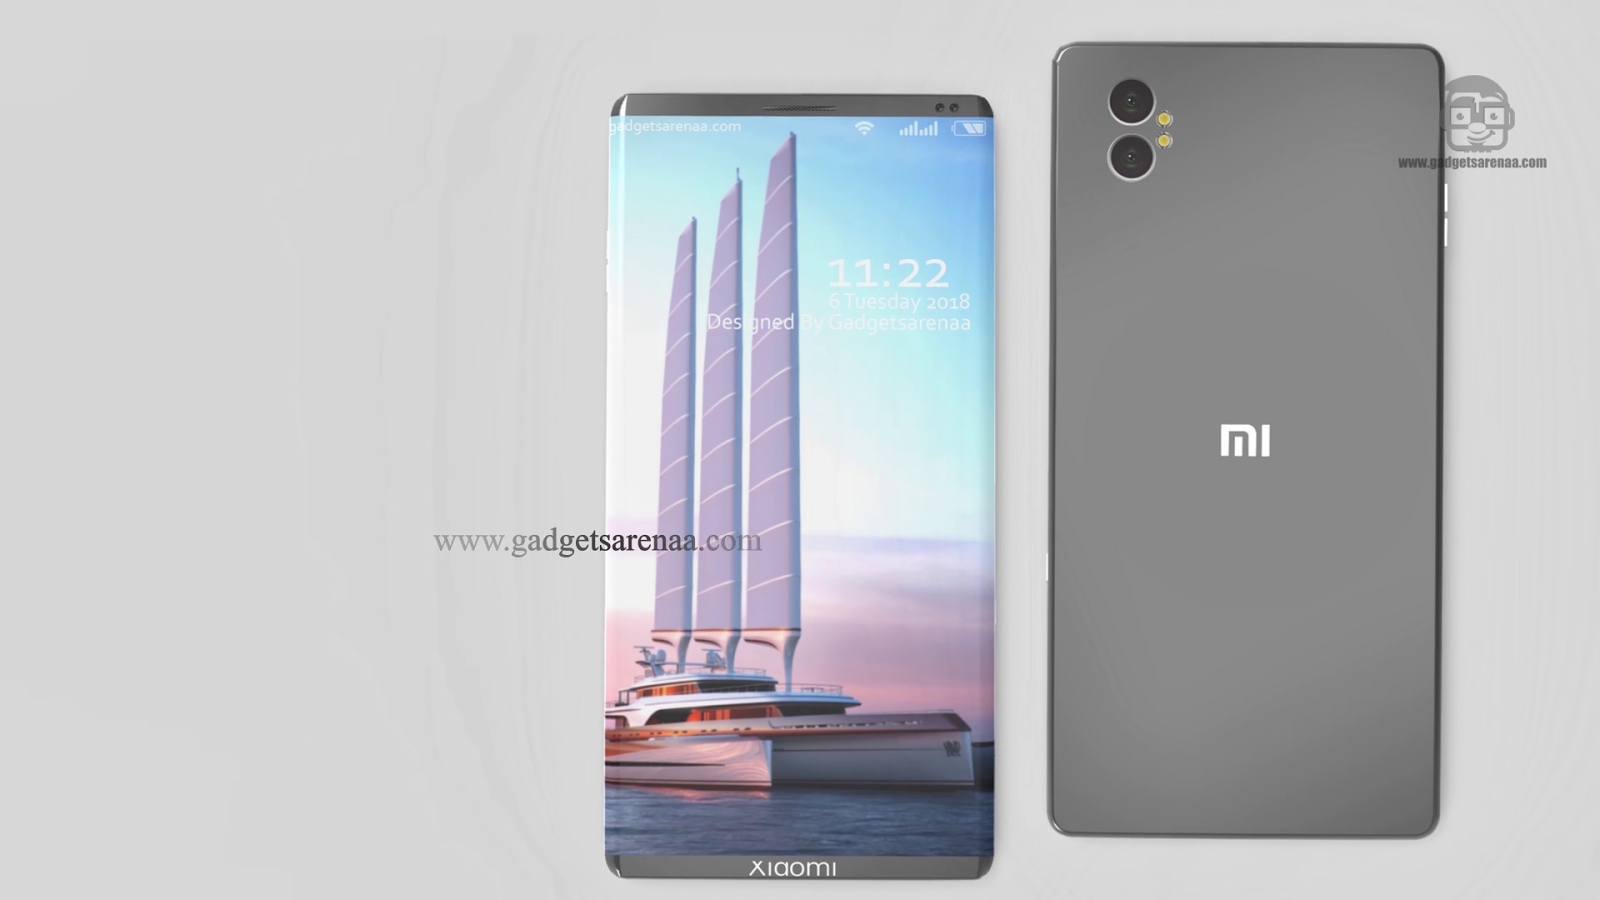 Xiaomi Mi Note Edge New Metalic Design - 2018 - Gadgets Arena